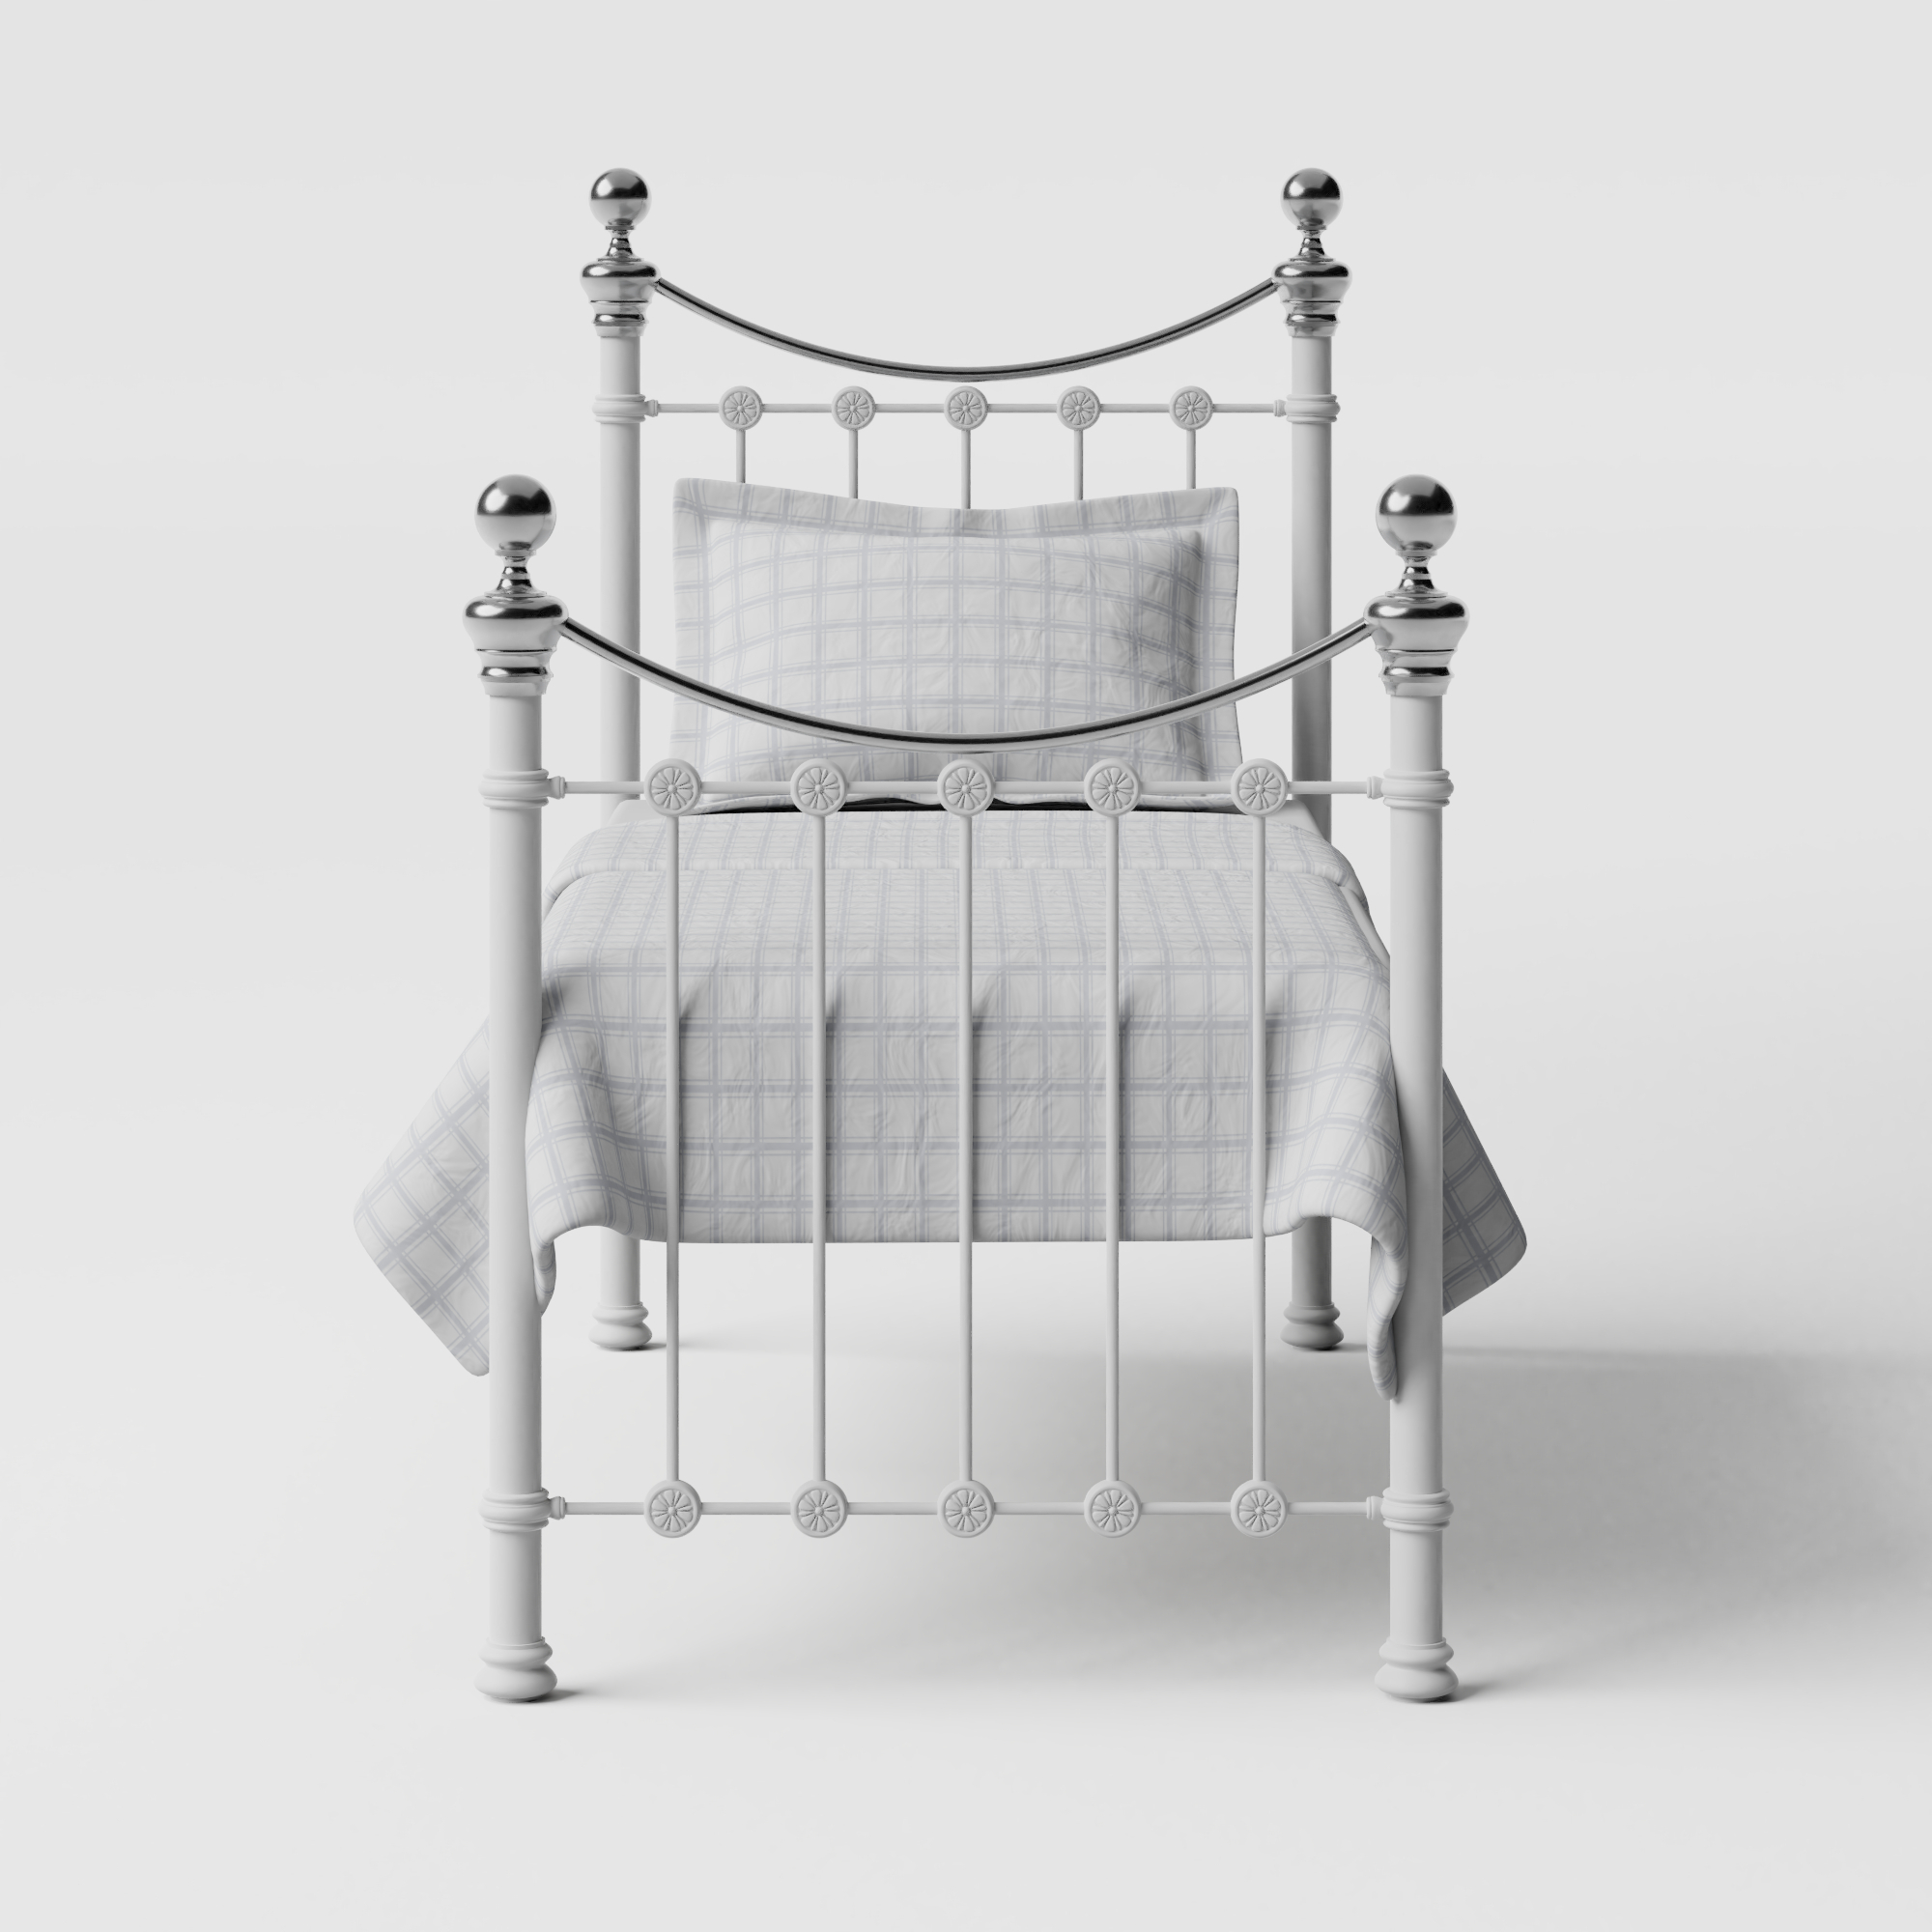 Selkirk Chromo iron/metal single bed in white